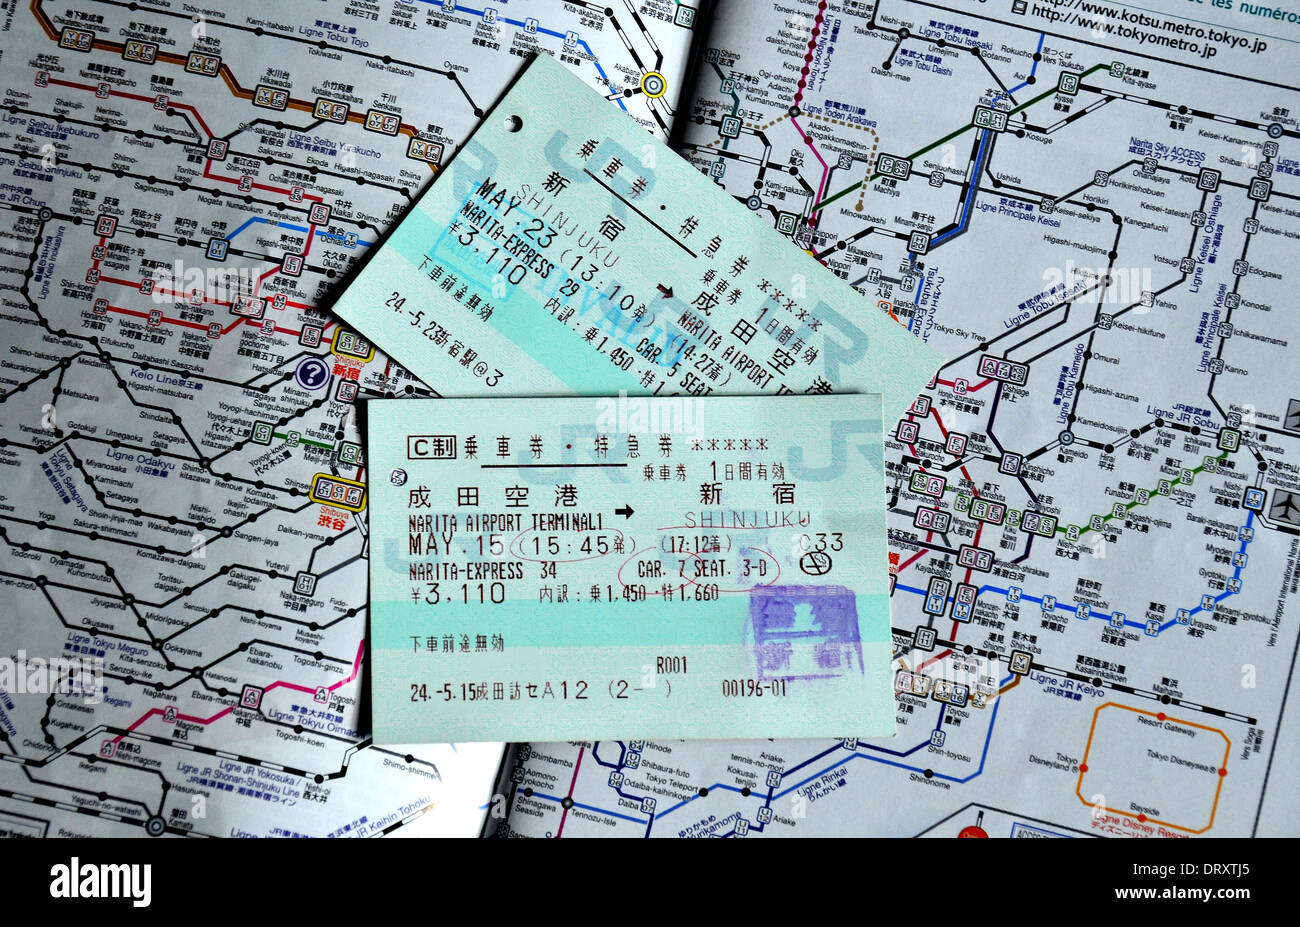 train ticket on the JR train network map Stock Photo